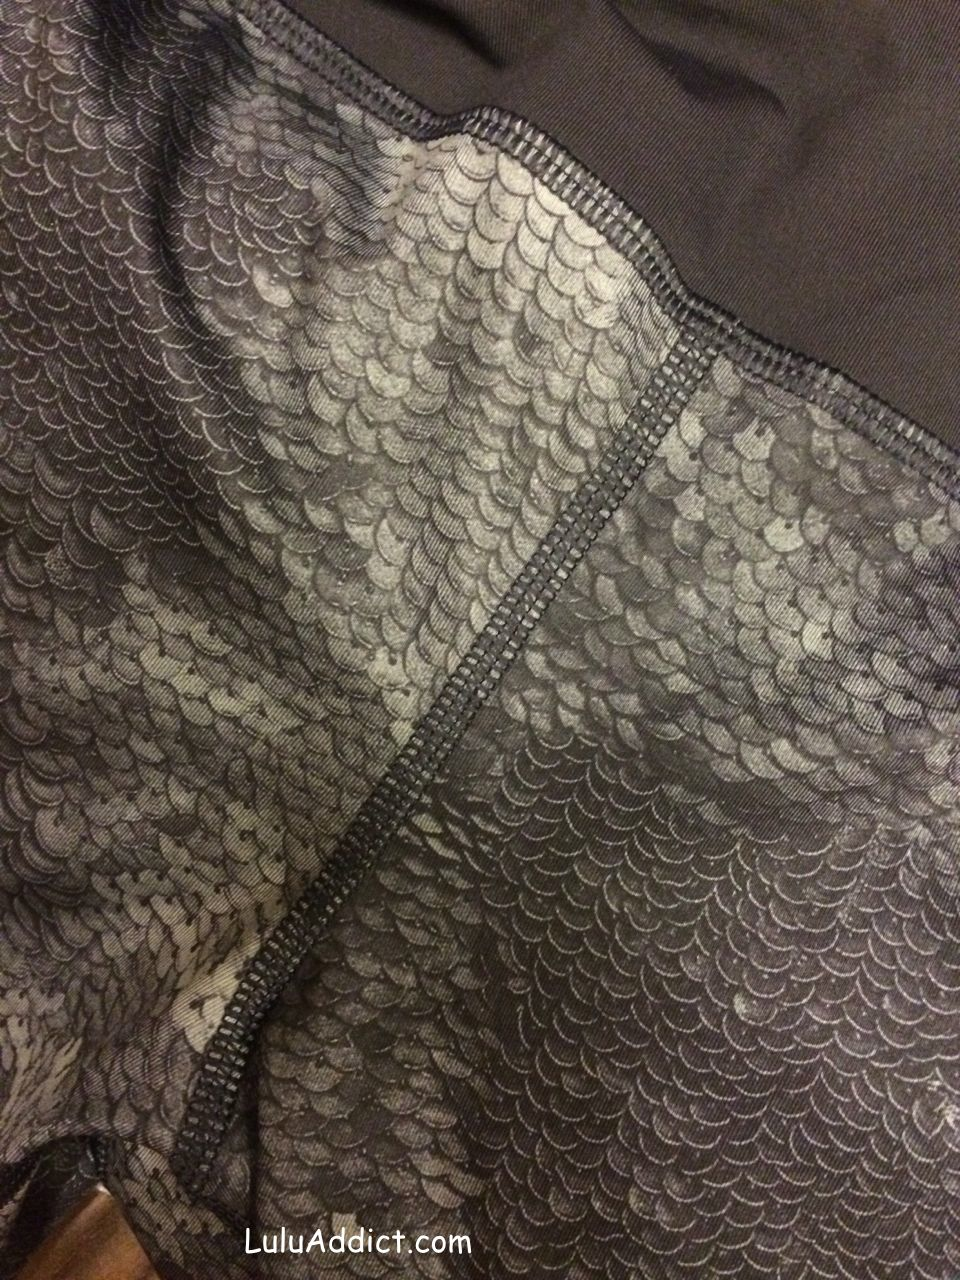 lululemon-sequin-snakeskin speed tight